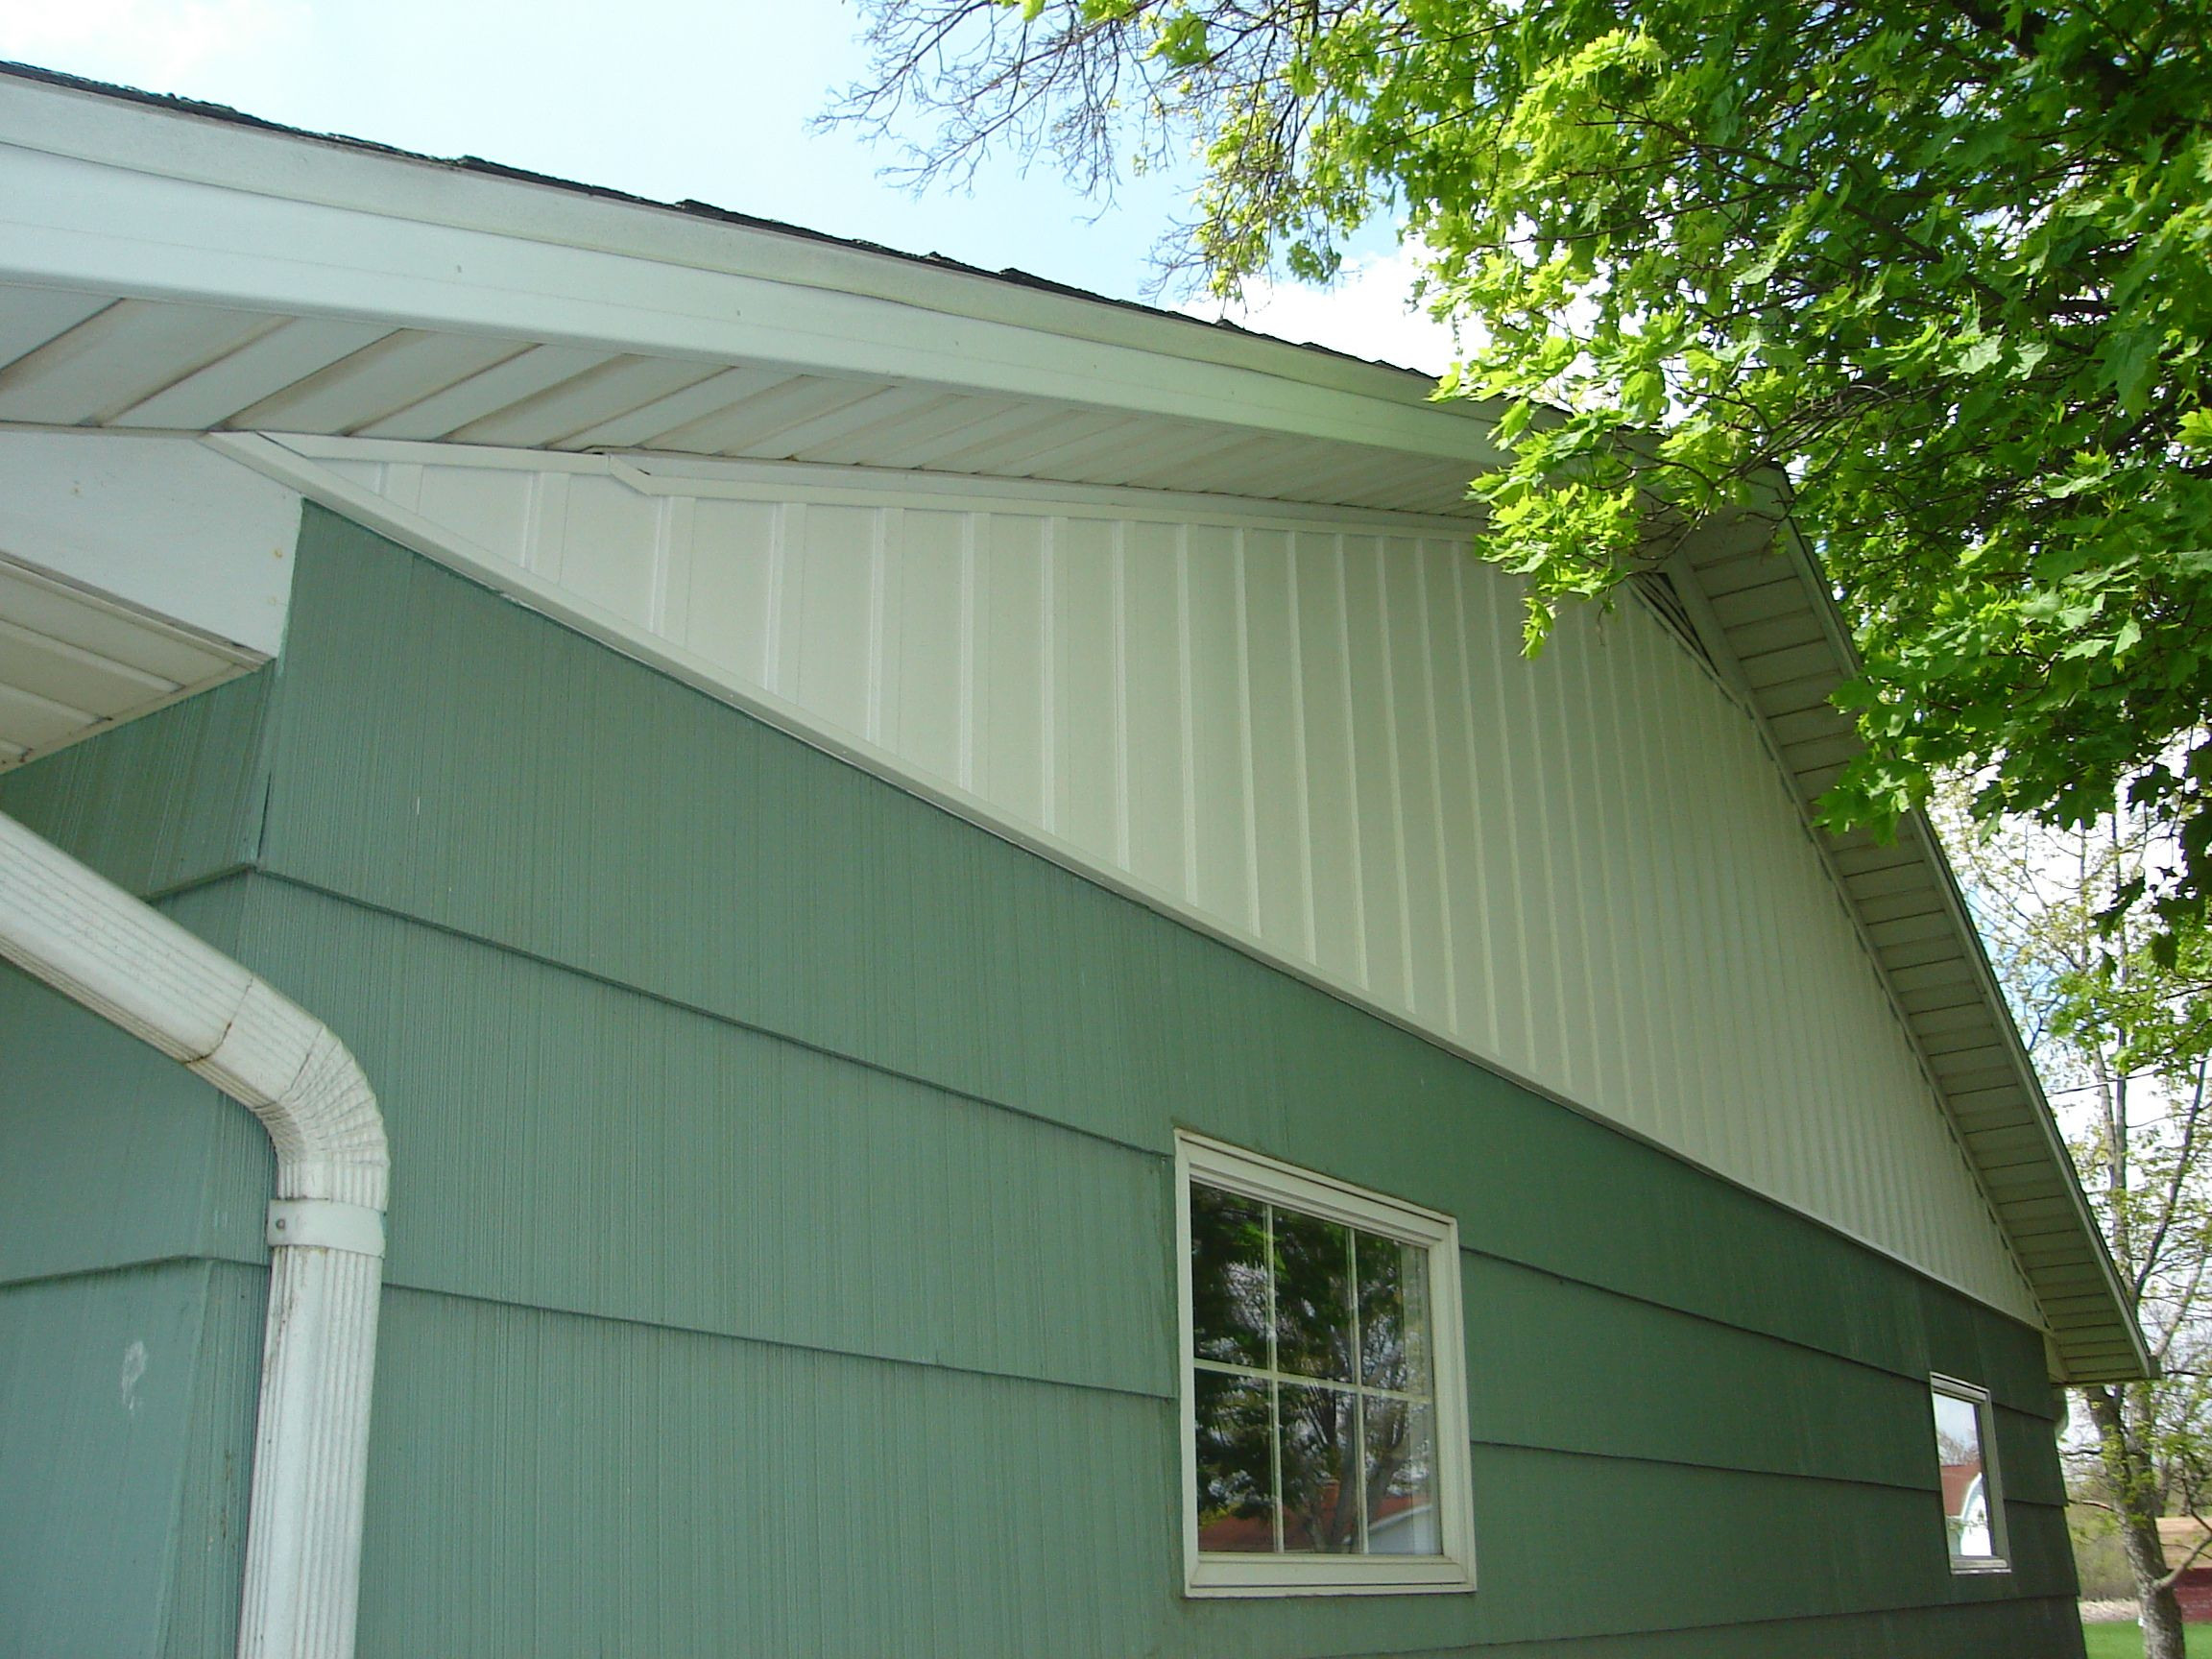 Vertical Contrasting Siding On Gable Remodel Siding